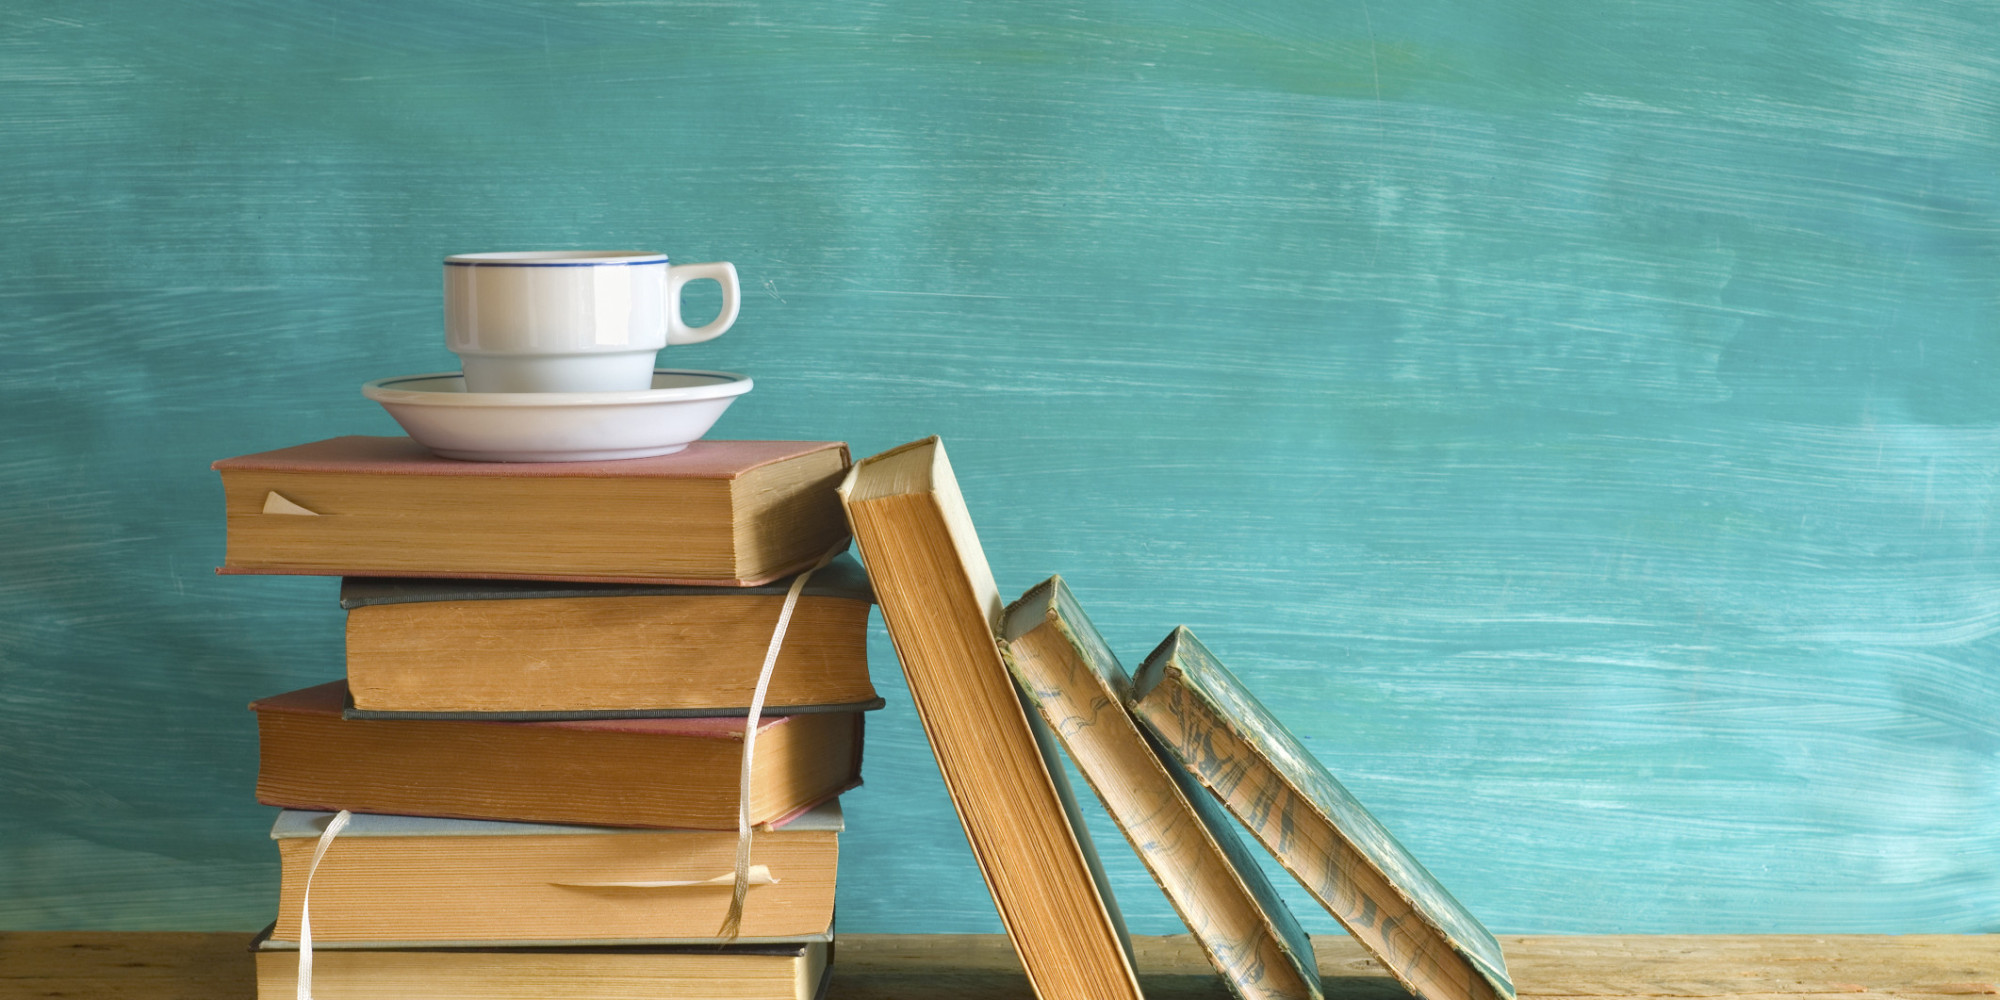 vintage books and a cup of coffee